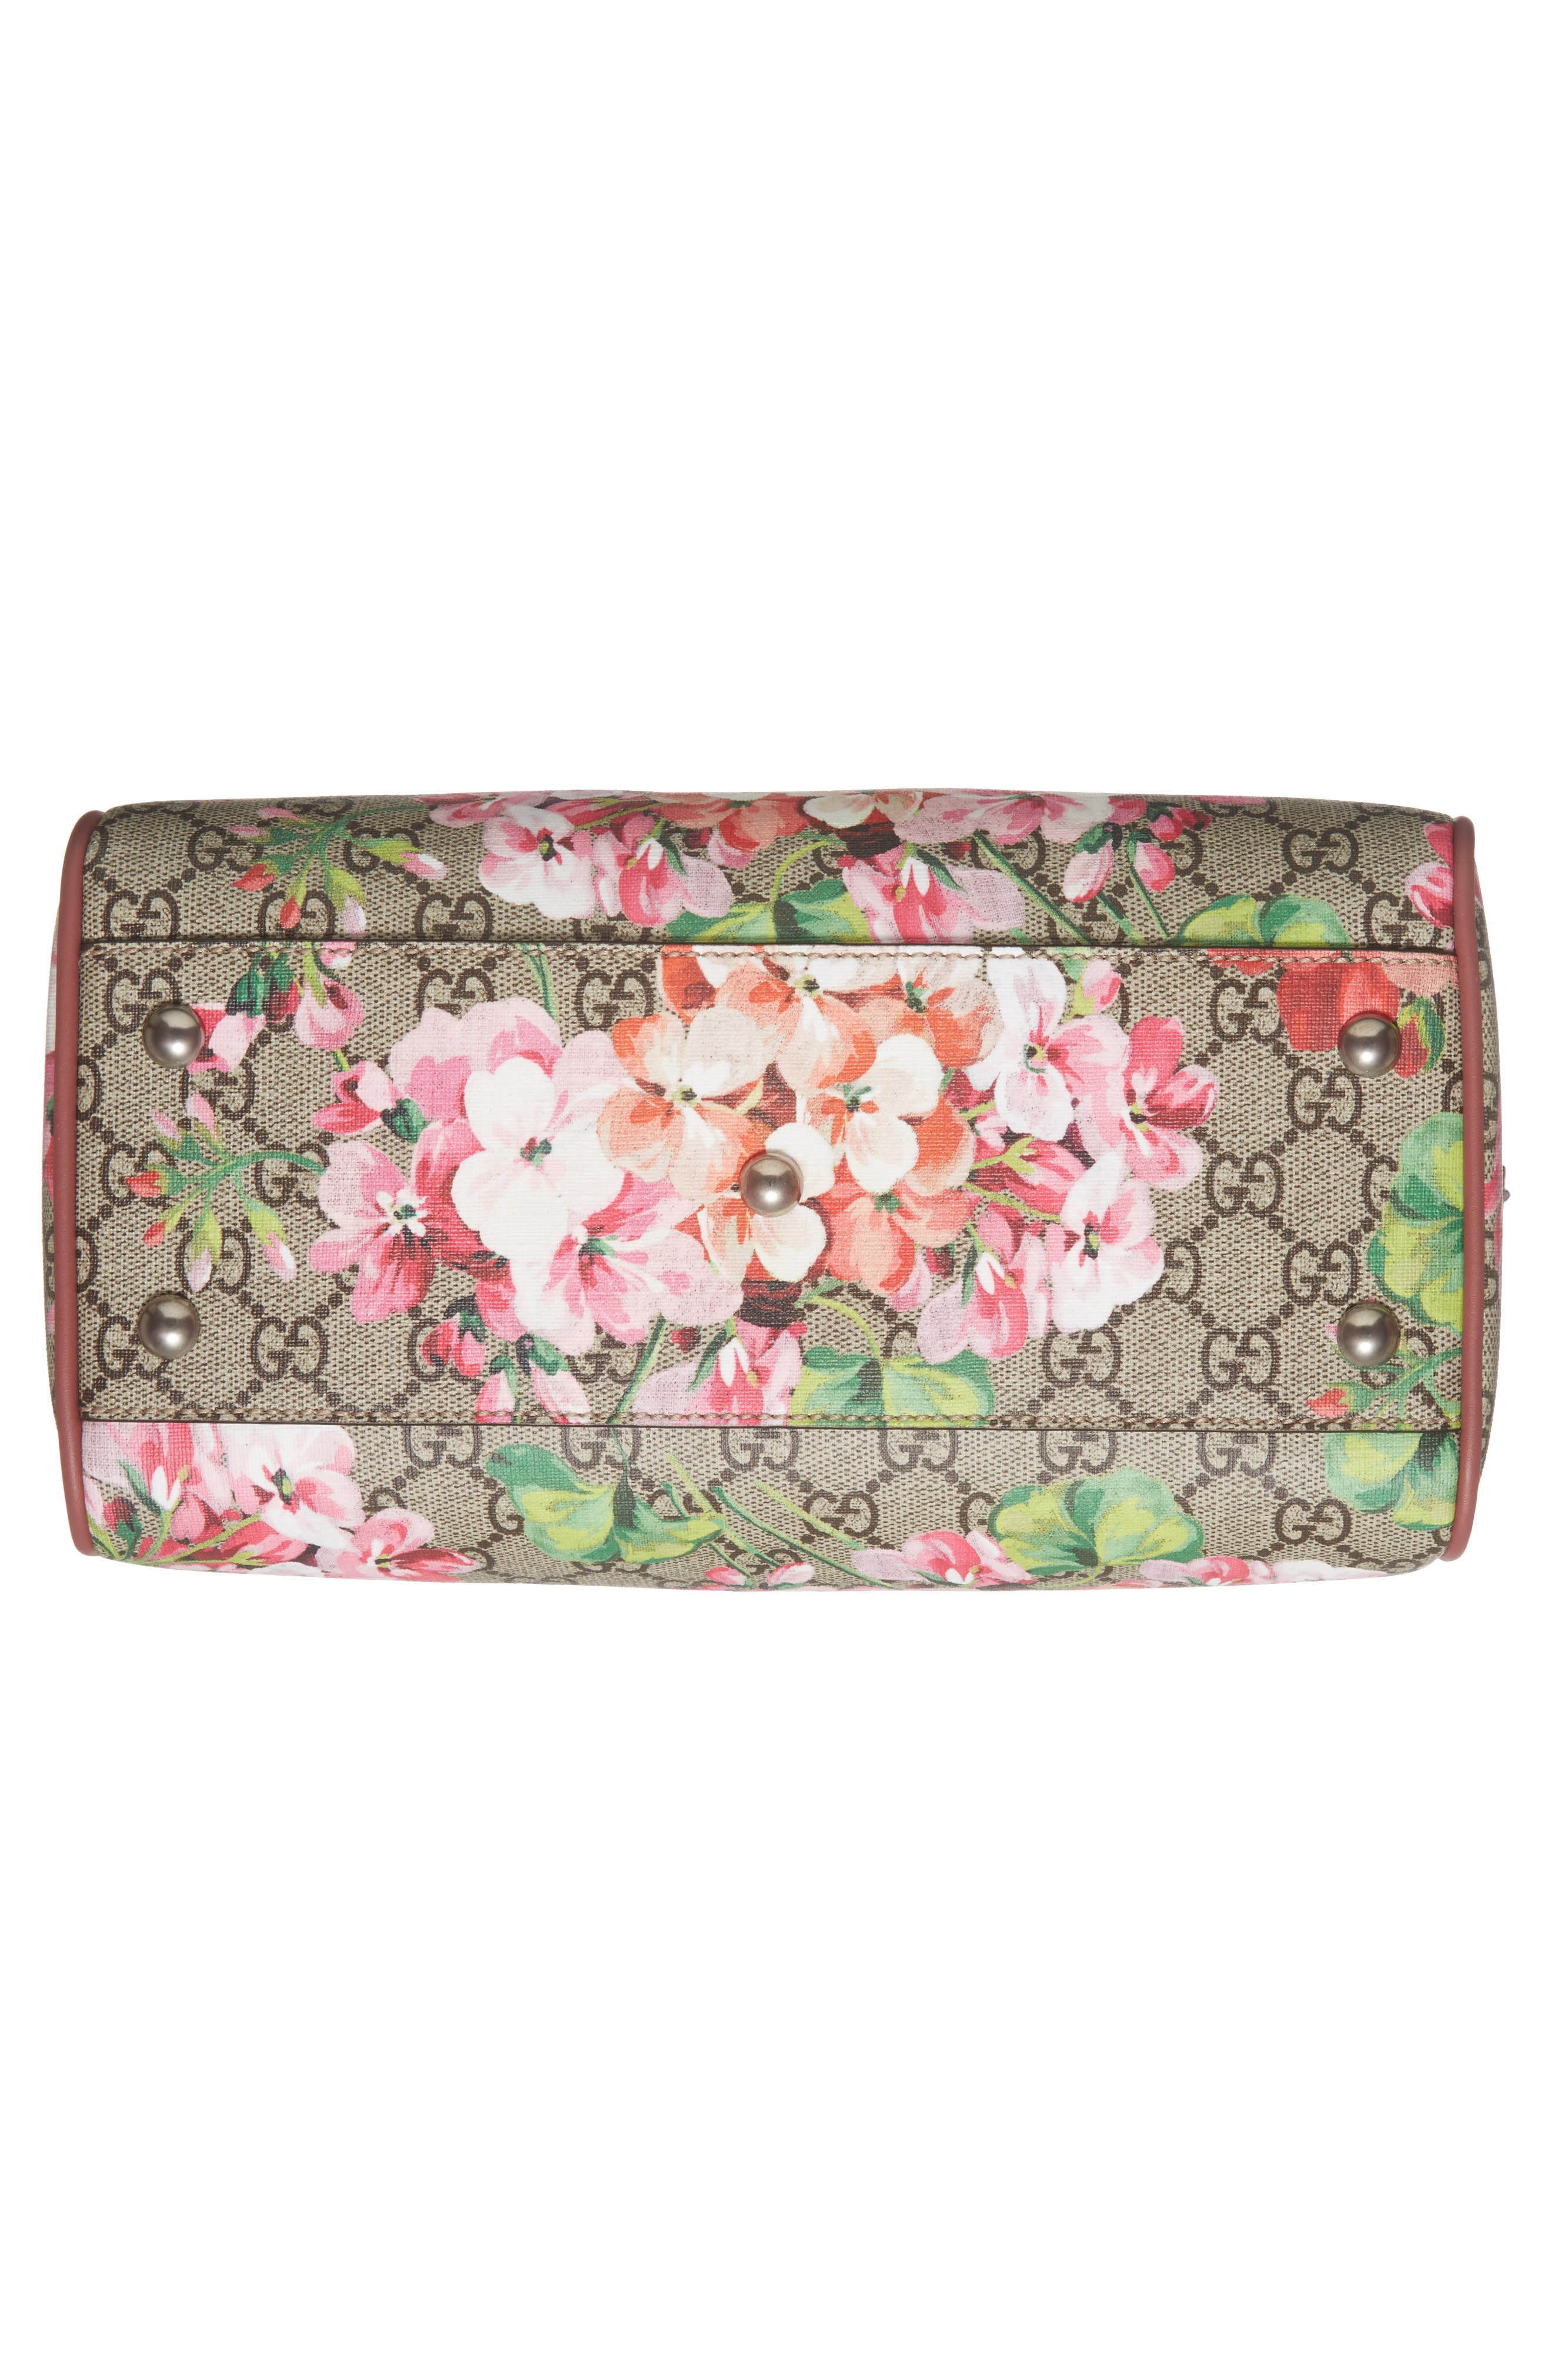 Small Blooms Top Handle GG Supreme Canvas Bag,                             Alternate thumbnail 5, color,                             Multi/Dry Rose